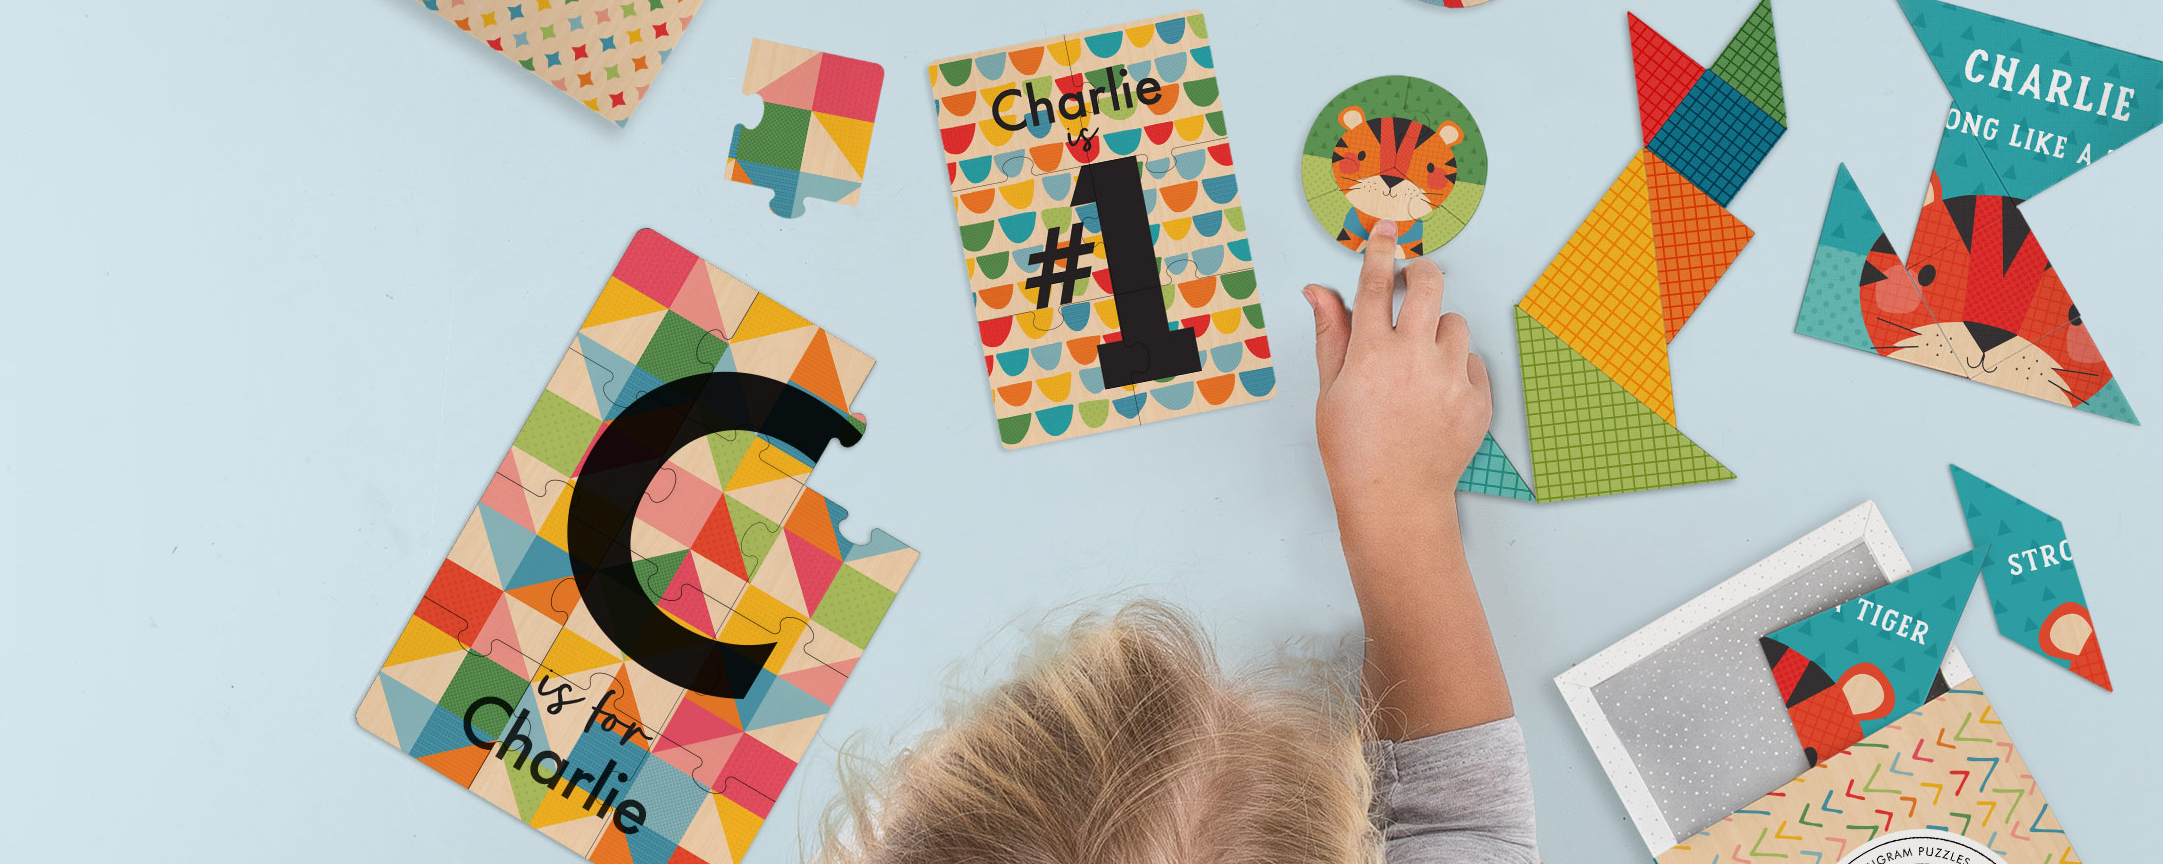 Personalised Wooden Jigsaw Puzzles And Name Puzzles - Tinyme Singapore - Print Jigsaw Puzzle Singapore